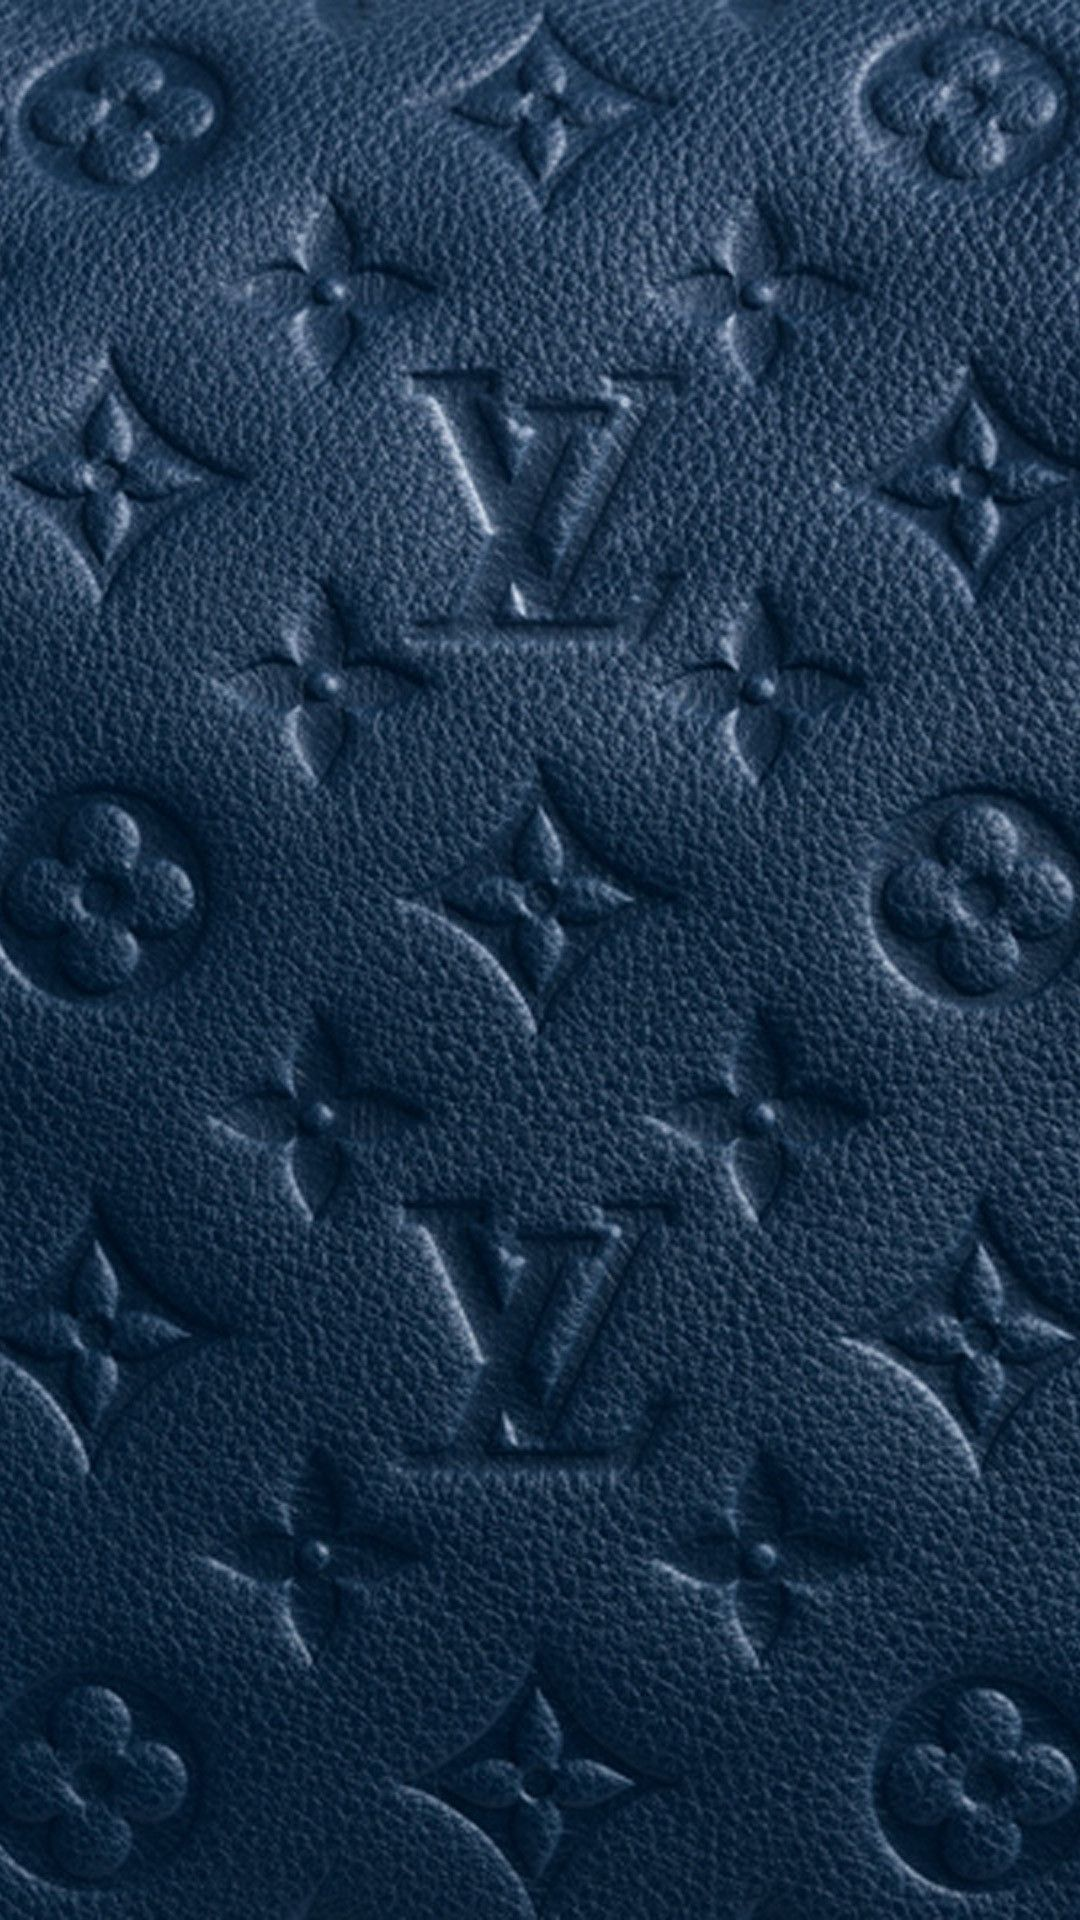 1080x1920 54+ Lv Wallpapers on WallpaperPlay